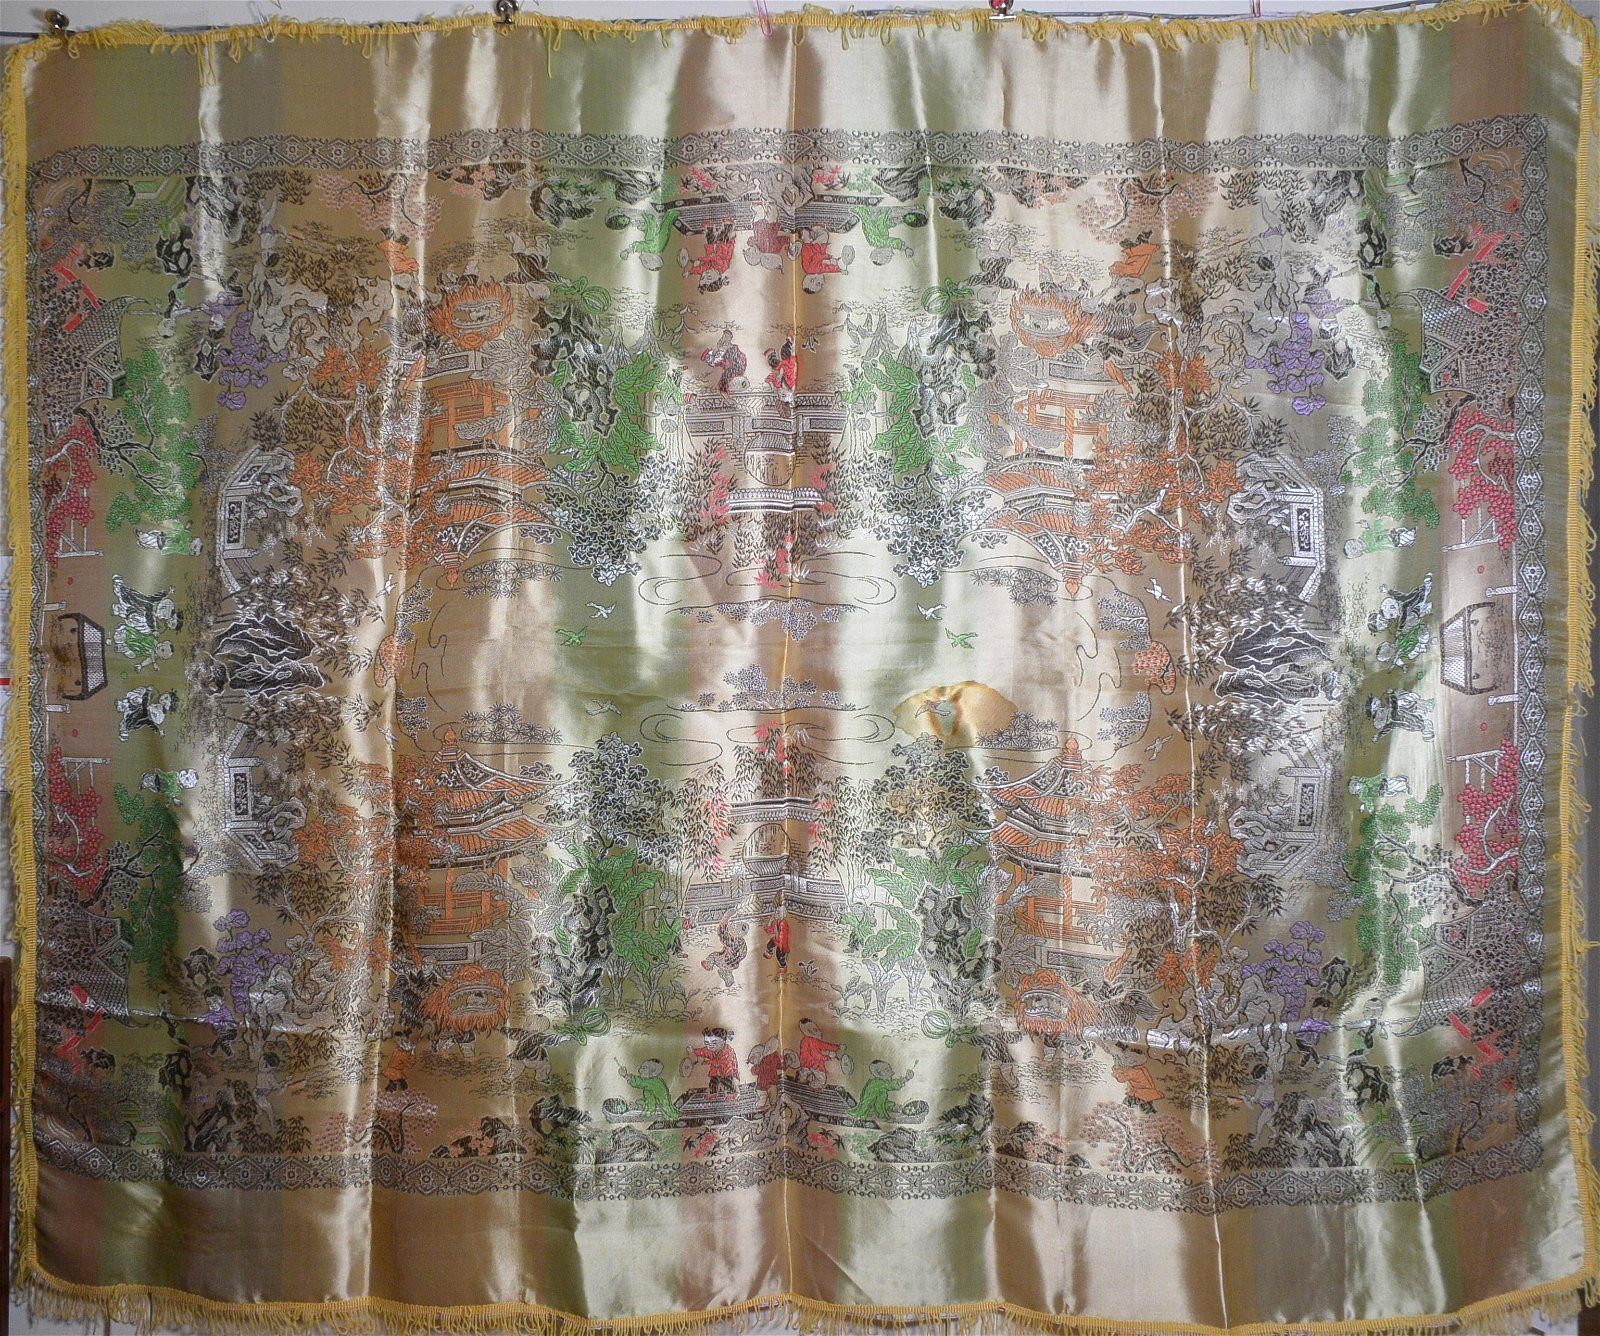 Chinese big size traditional textile tablecloths from